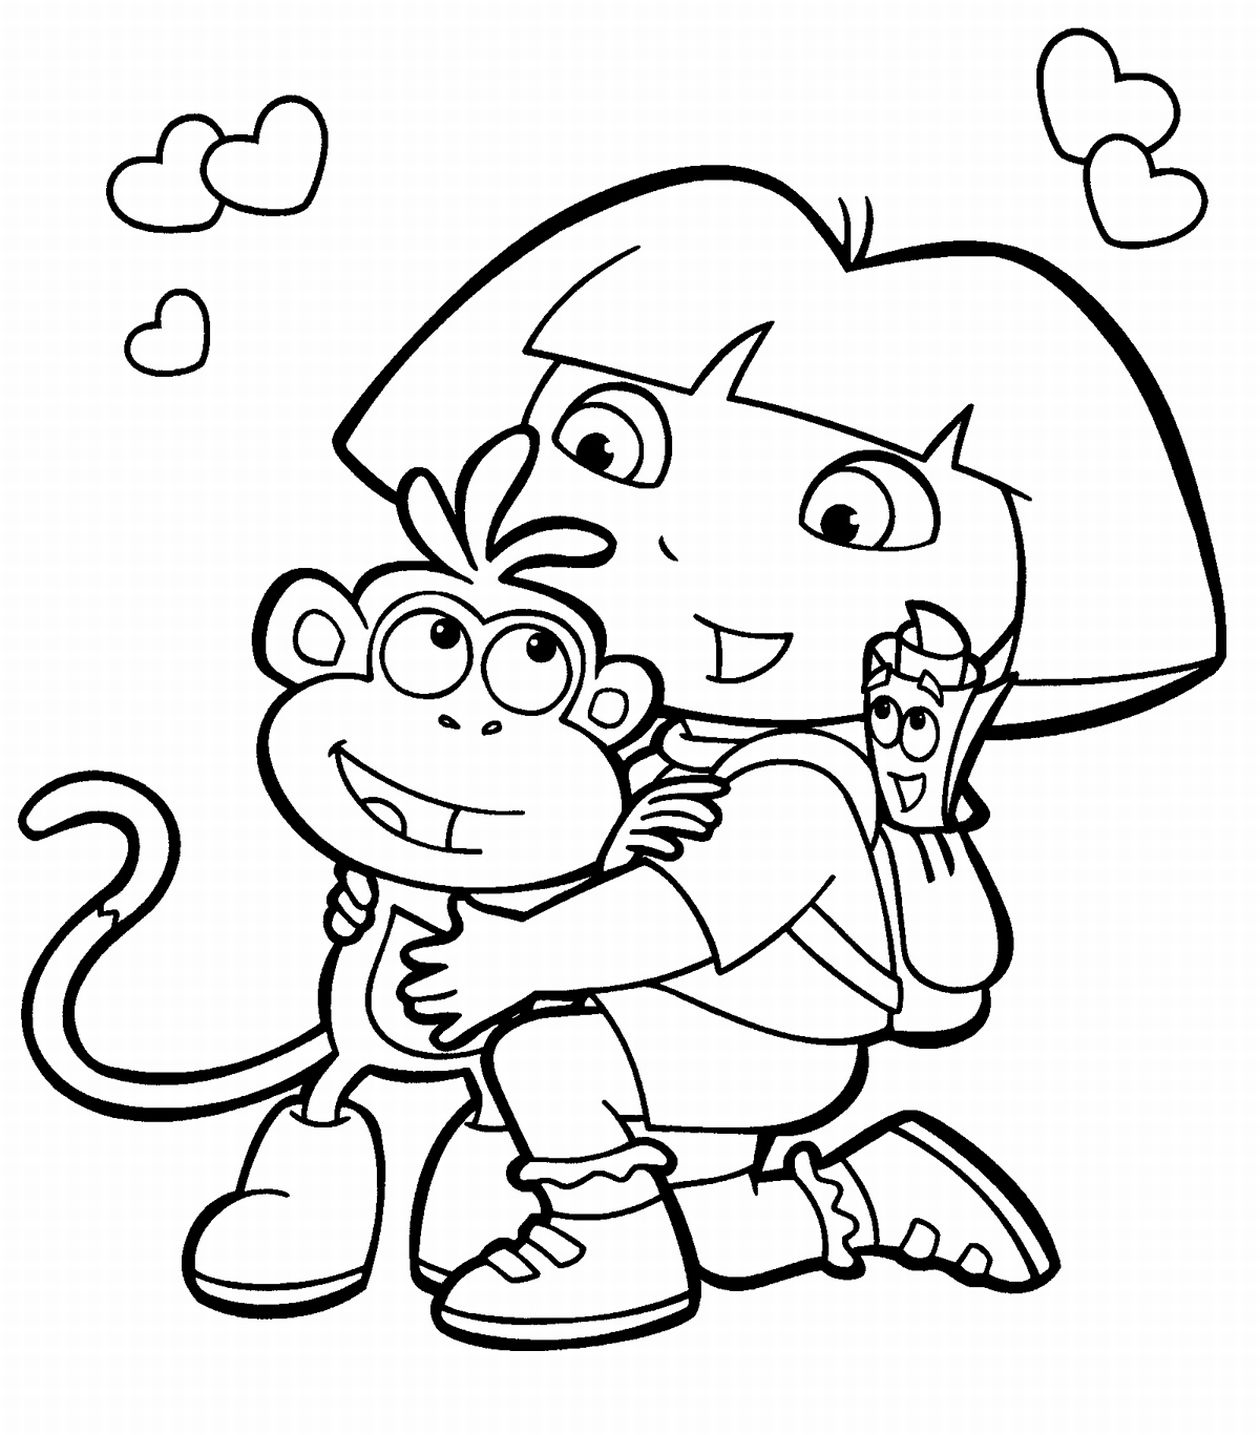 dora colouring pages print download dora coloring pages to learn new things pages colouring dora